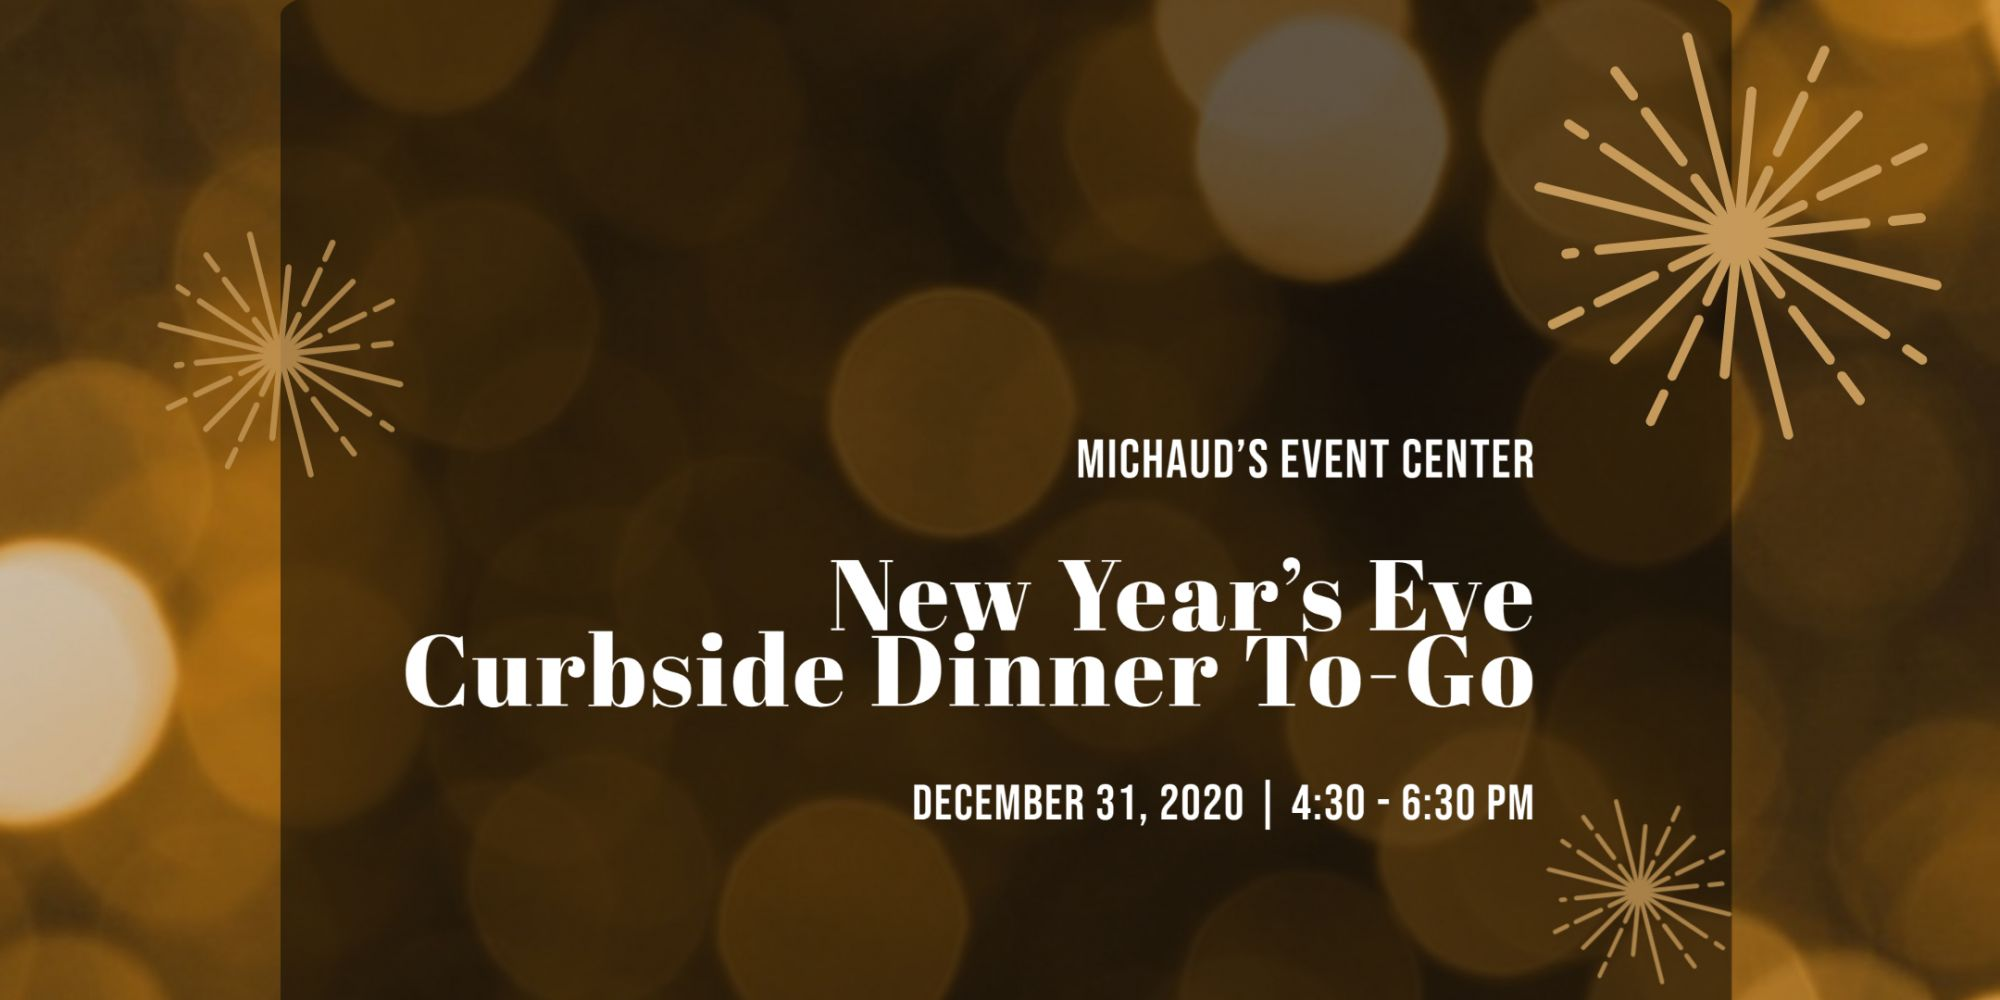 Michauds-New-Years-Eve-2021-Curbside-Dinner